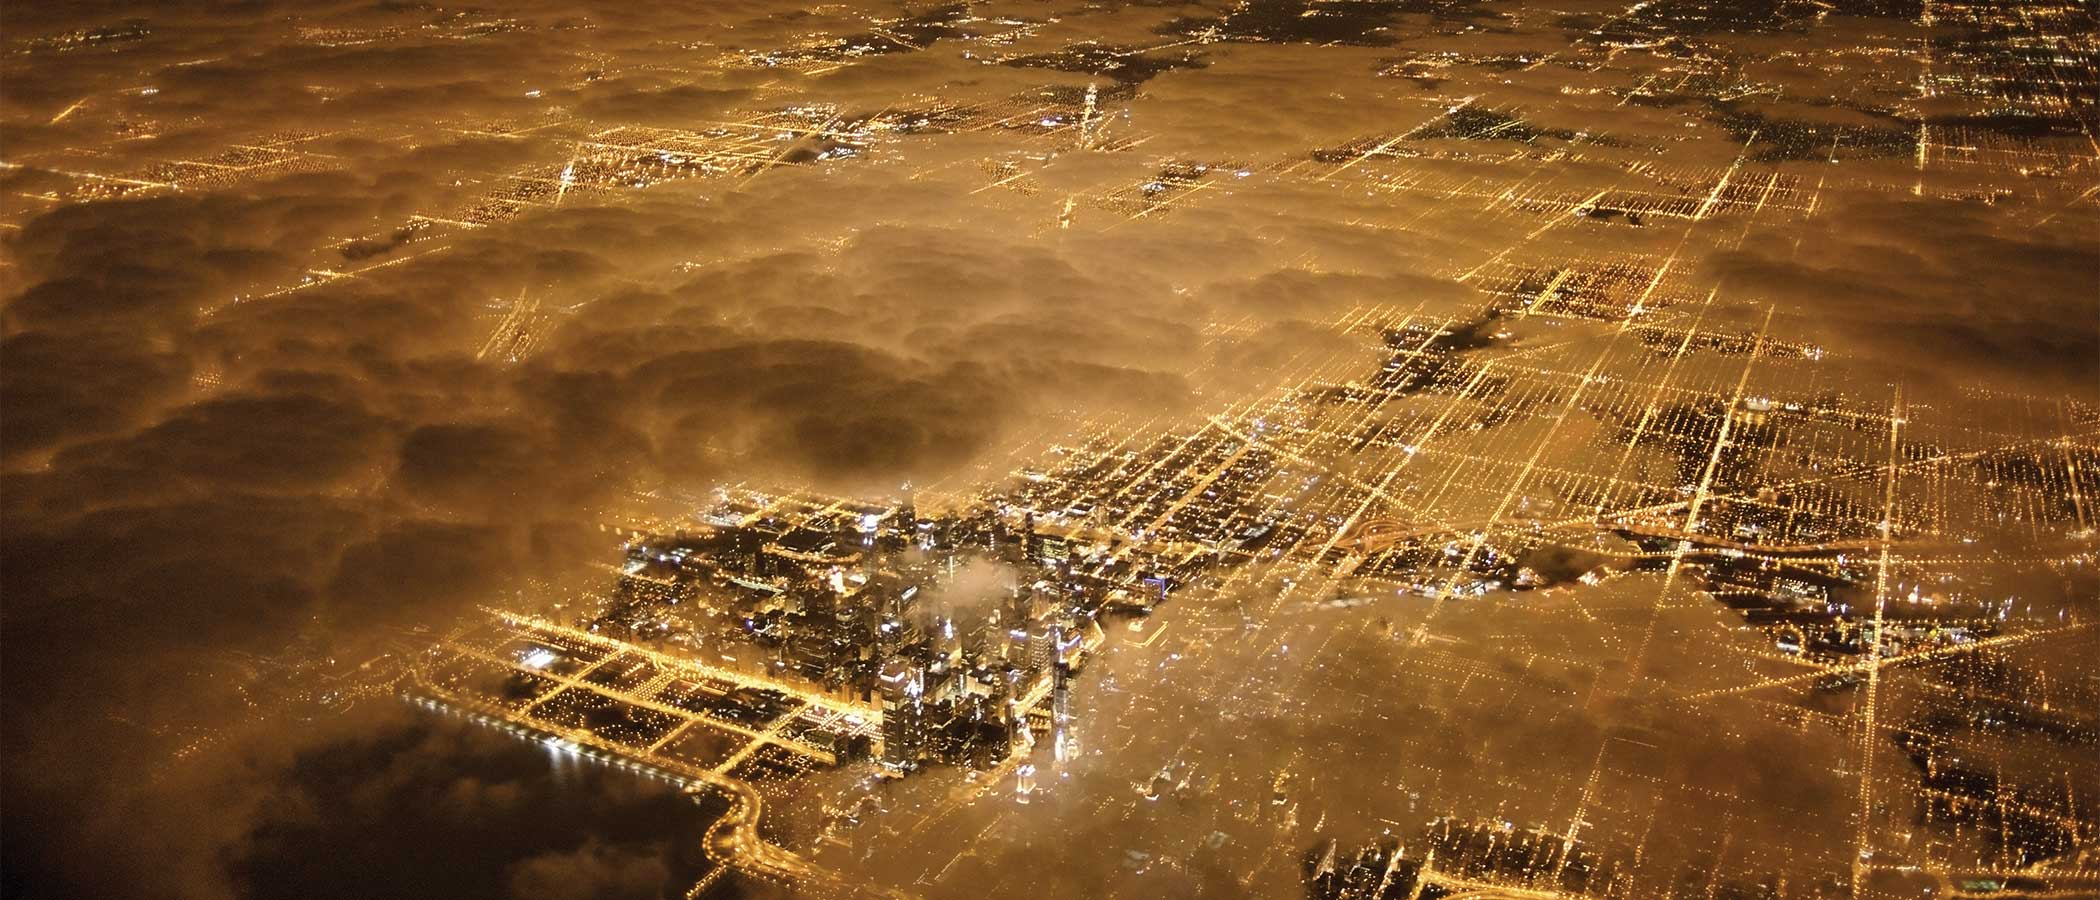 Aerial view of a city at night with glowing lights of buildings and streets